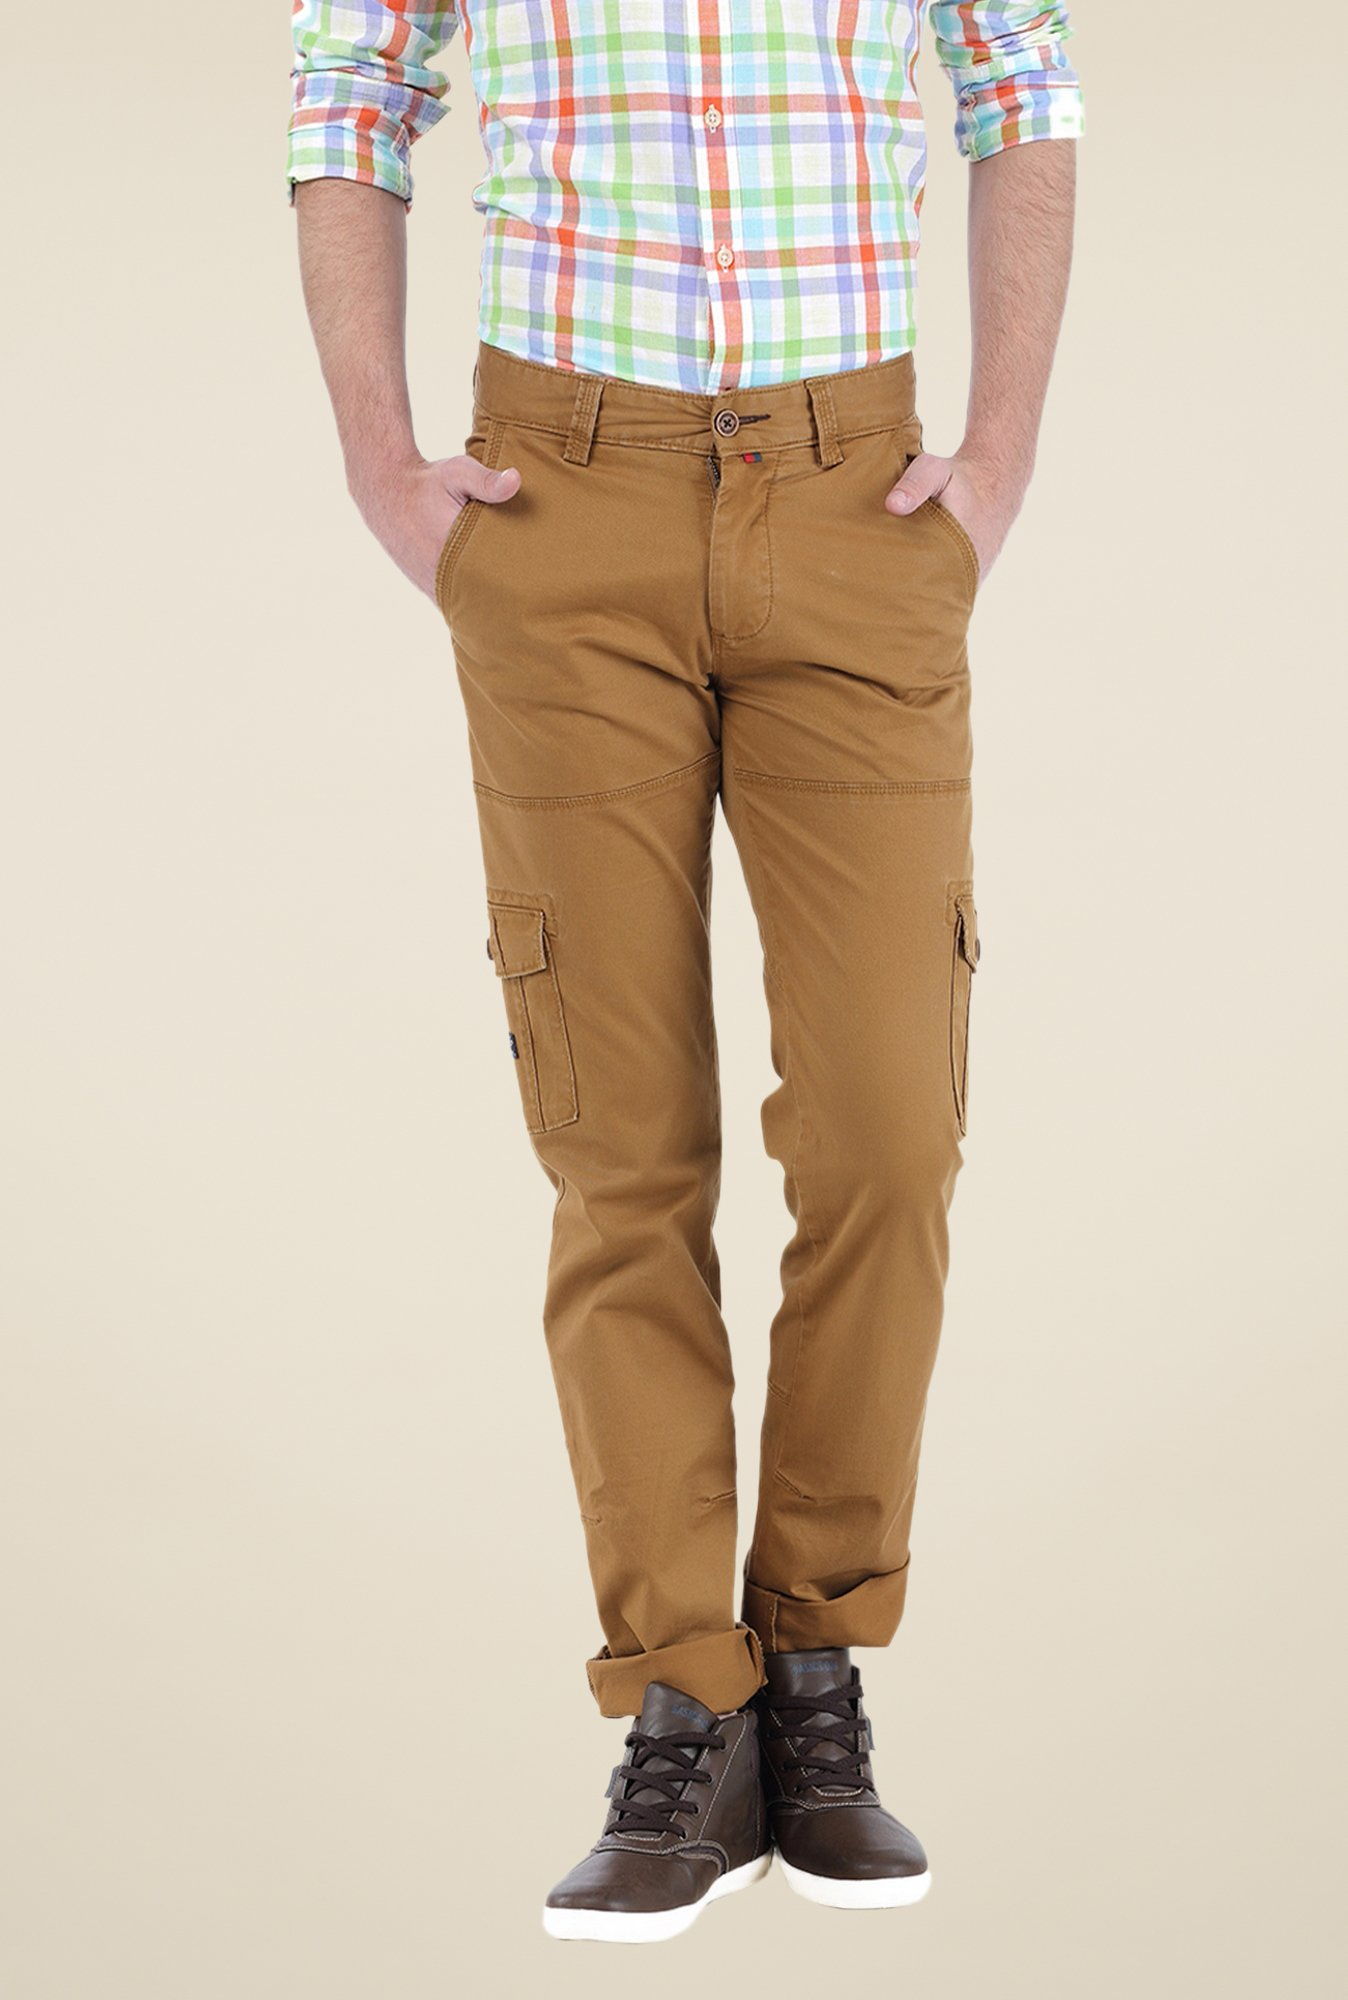 Basics Brown Solid Cargos